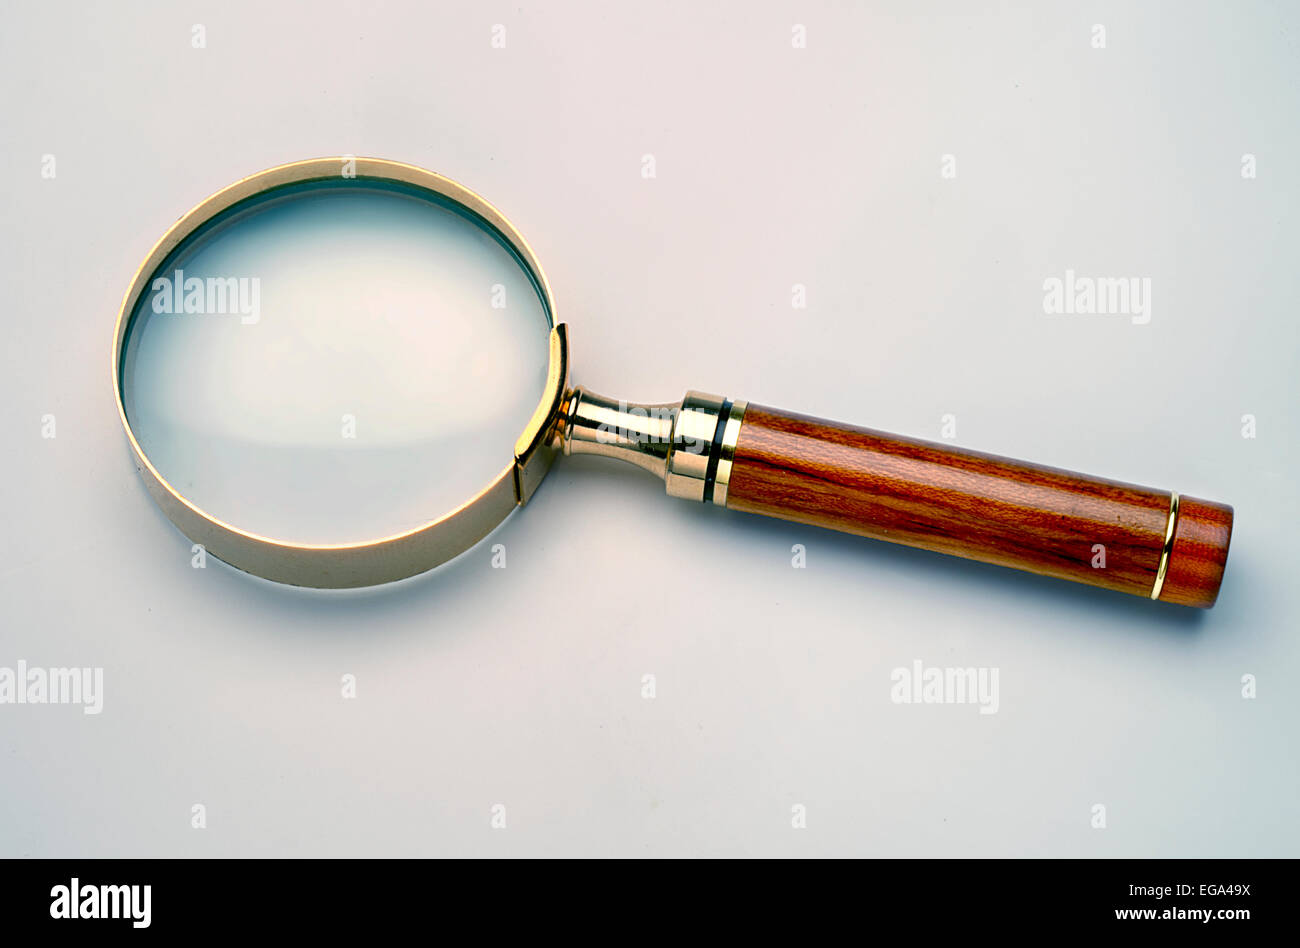 Loupe Photo Stock